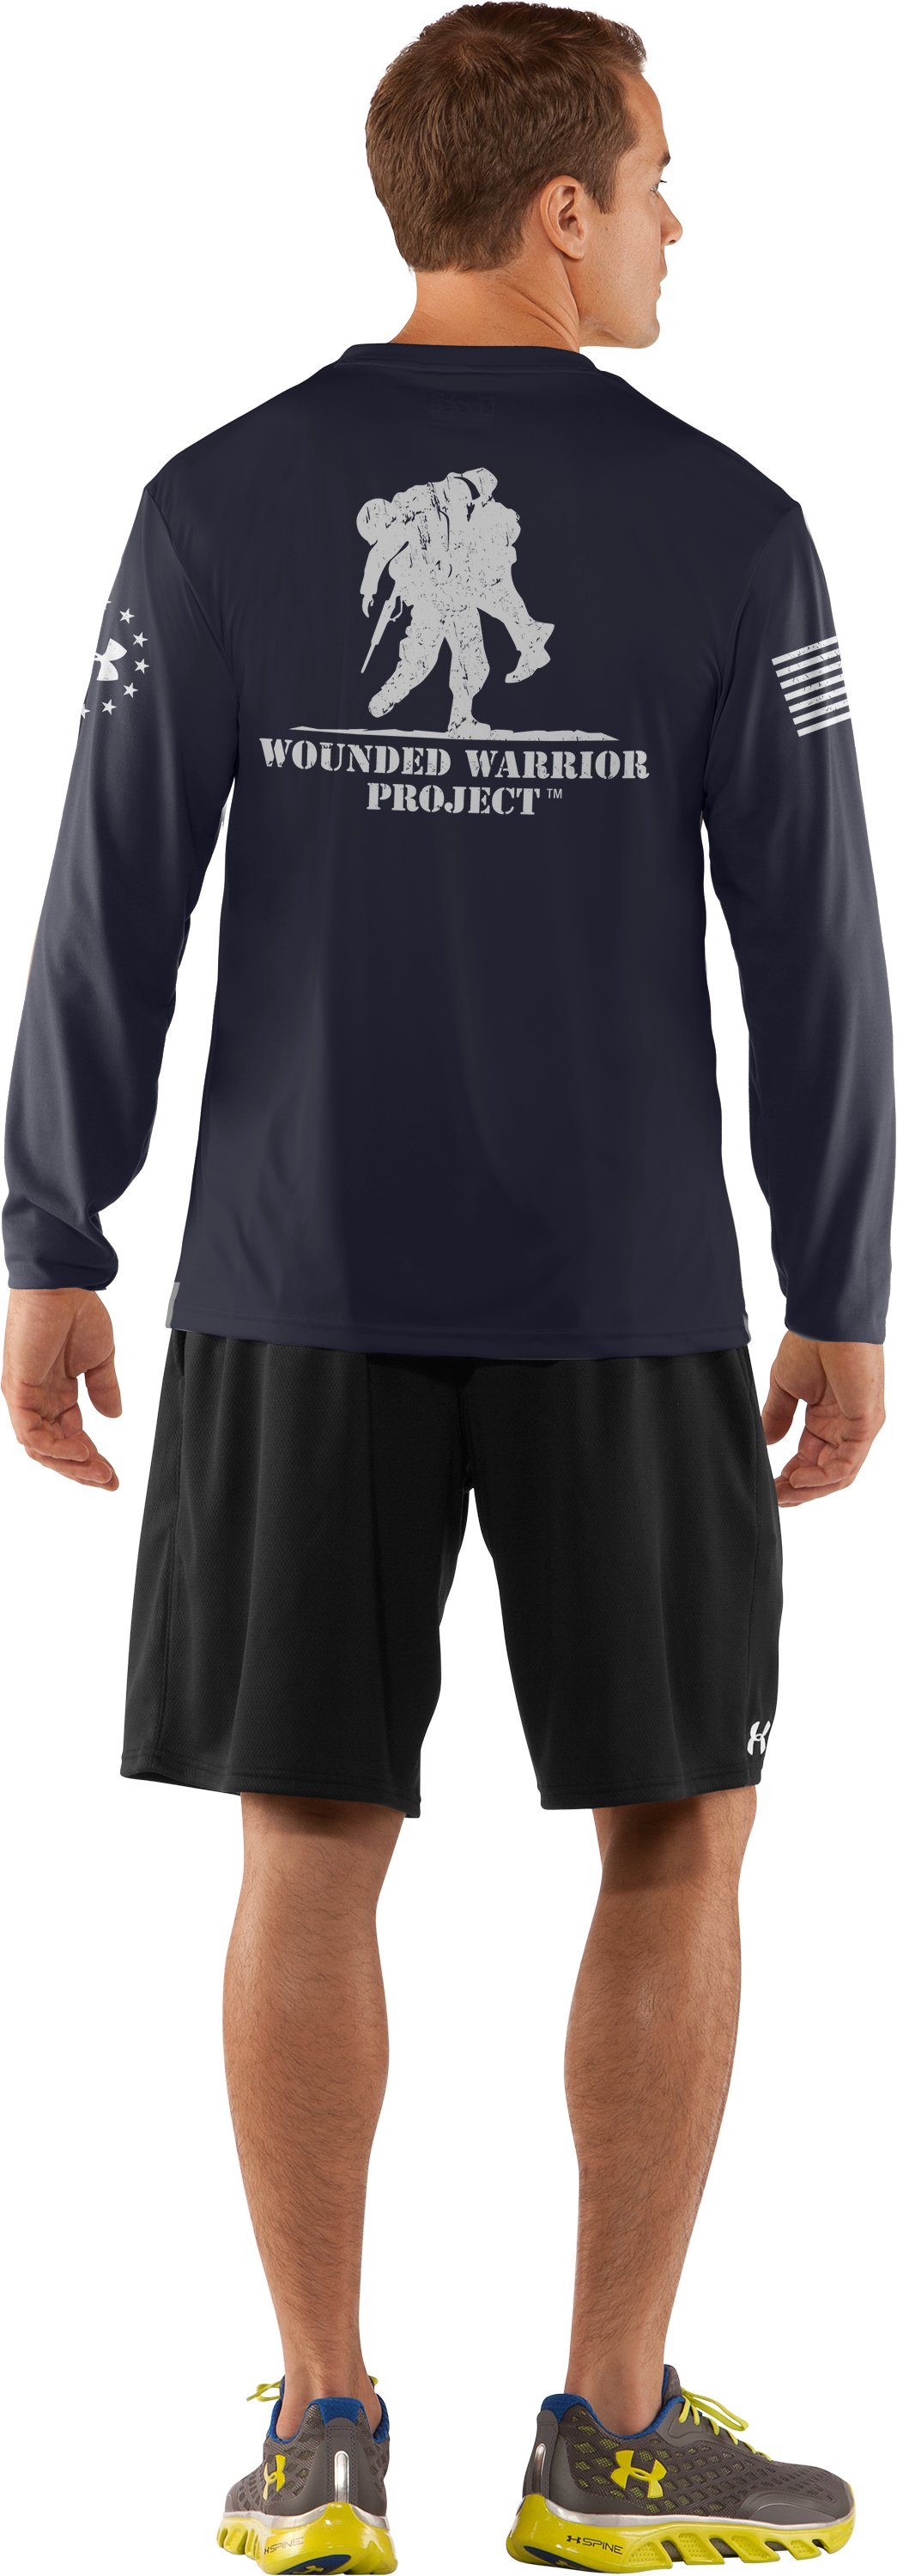 Men's WWP Long Sleeve T-Shirt, Dark Navy Blue , Back